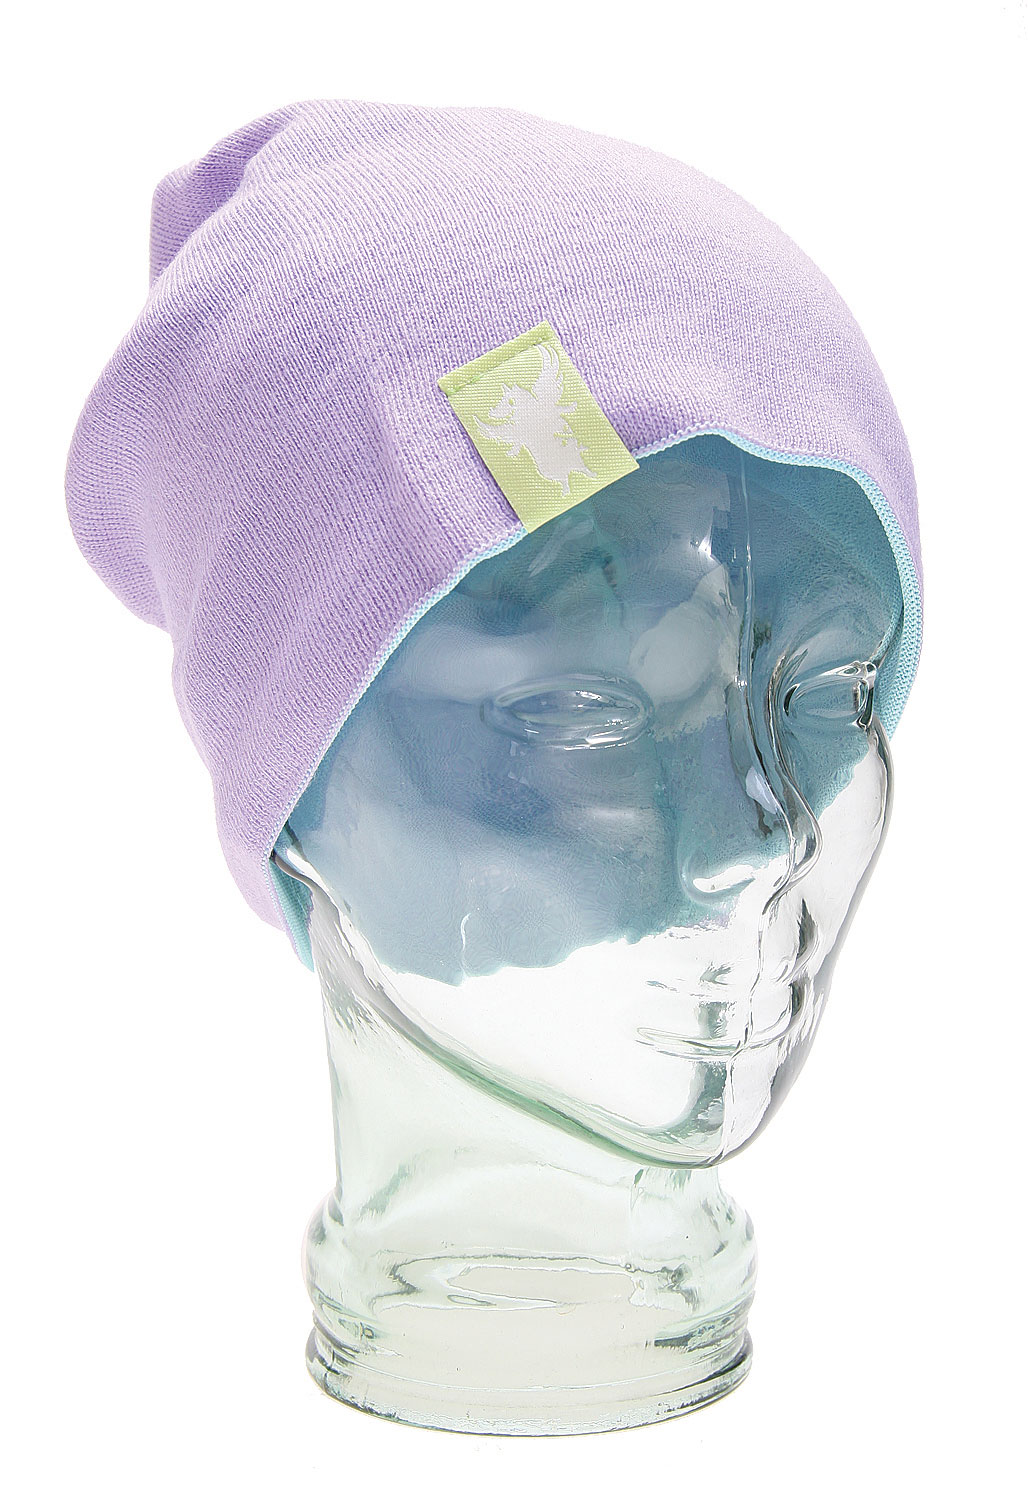 Snowboard We know that not everything needs to be fancy-schmancy runway styles. This is a beanie that's here to get things done while still looking simply great. The Burton Un Inc Glogetem Beanie features a solid color with a minimalistic logo tag. It's super comfortable and soft, so you'll want this beanie on your head all the time. With its simple style, it's easy to match and wear with just about everything. Grab this beanie and get going. - $13.95